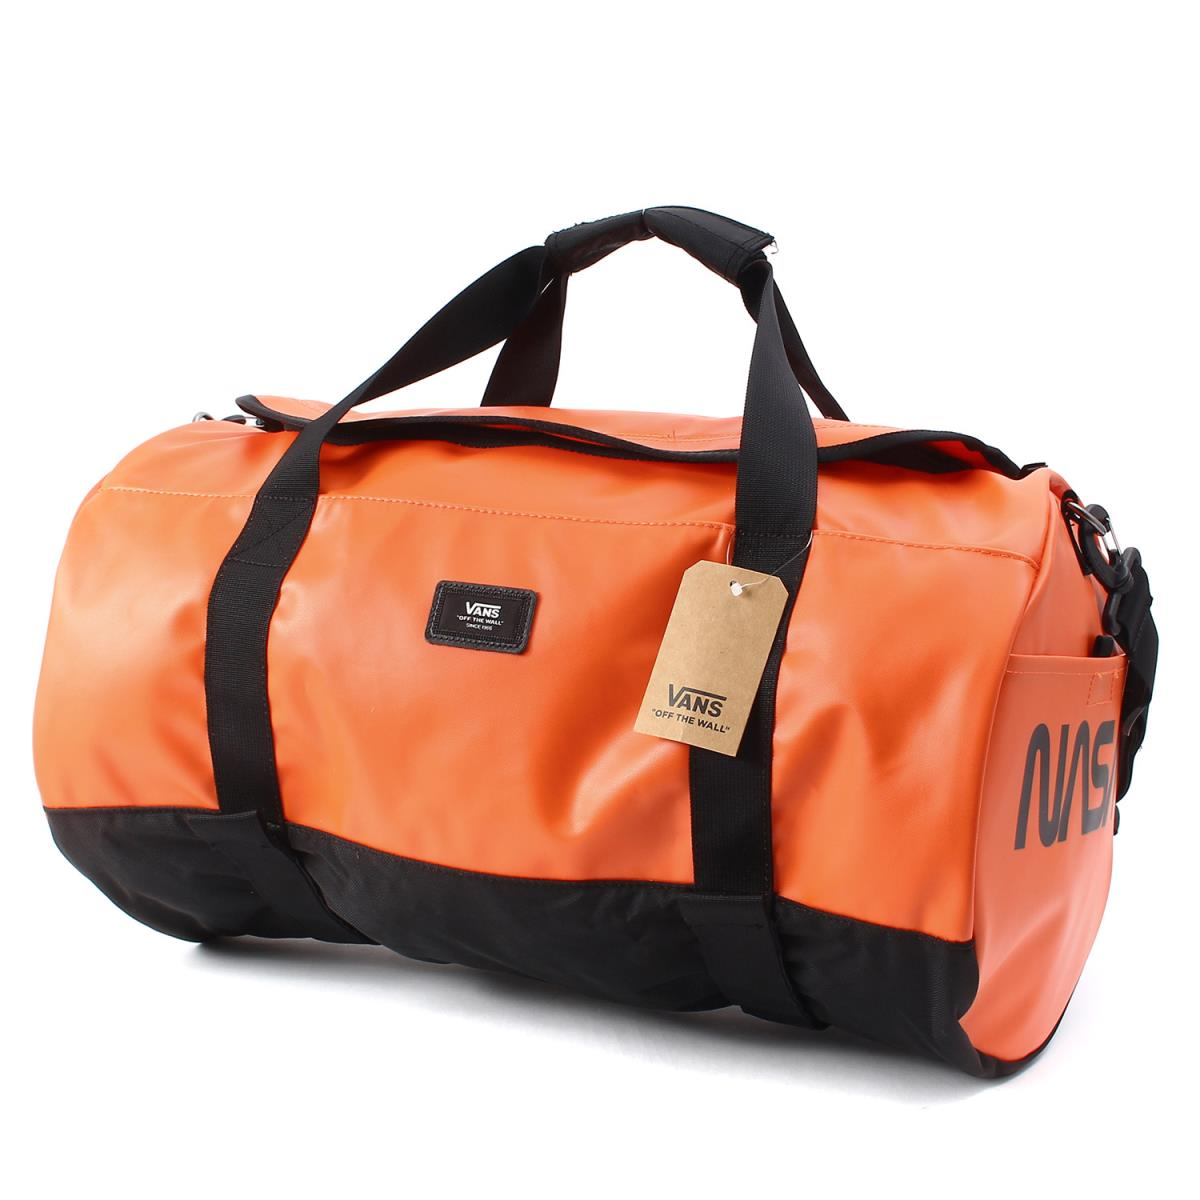 VANS (vans) 18A/W X NASA skating duffel back (GRIND SKATE DUFFLE) orange to grind